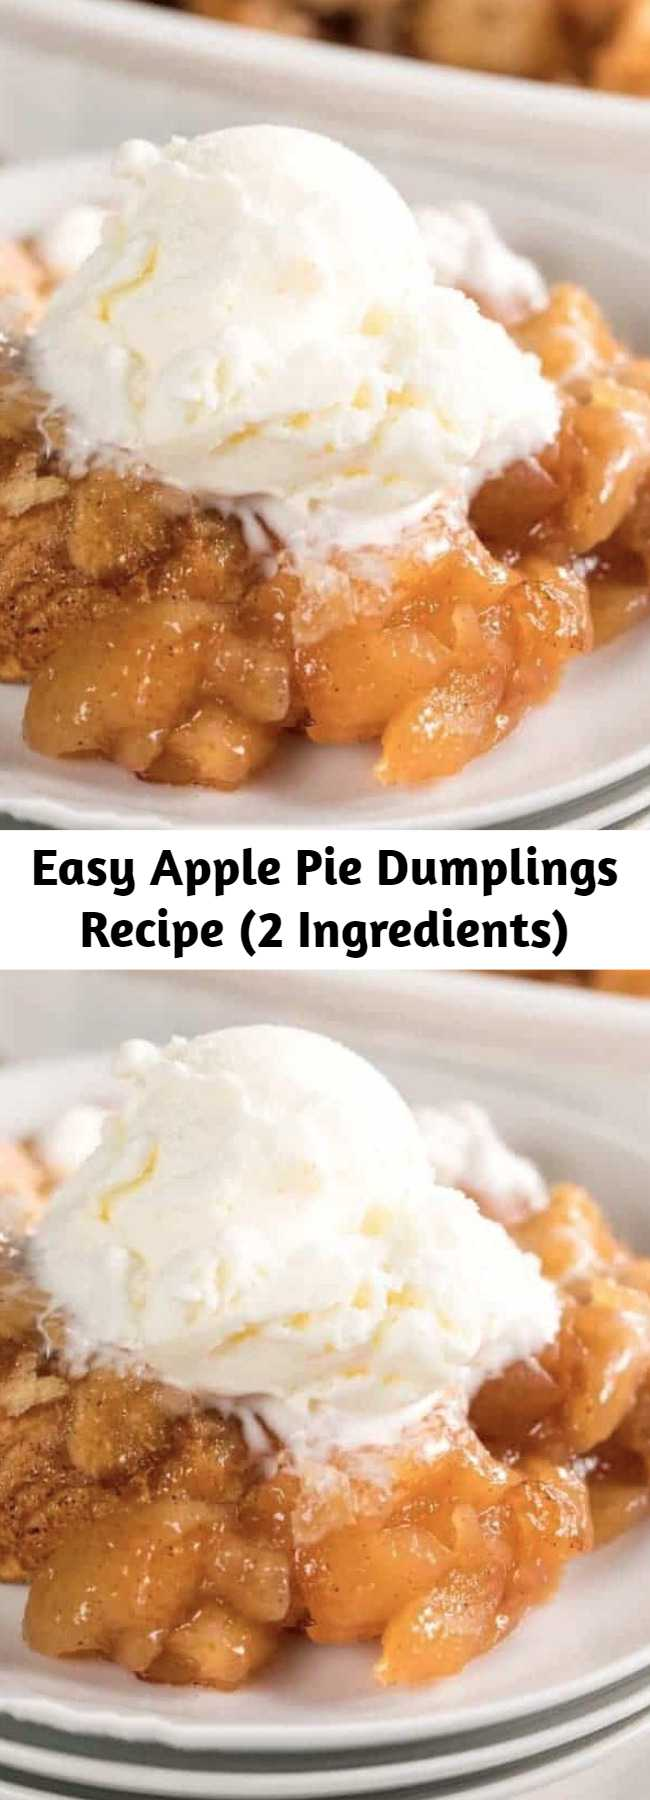 Easy Apple Pie Dumplings Recipe (2 Ingredients) - Apple Pie Dumplings made with just two easy ingredients! Simply add them to a baking dish and cook until tender and lightly browned. Serve these dumplings warm out of the oven with a big scoop of vanilla ice cream or a drizzle of heavy cream.